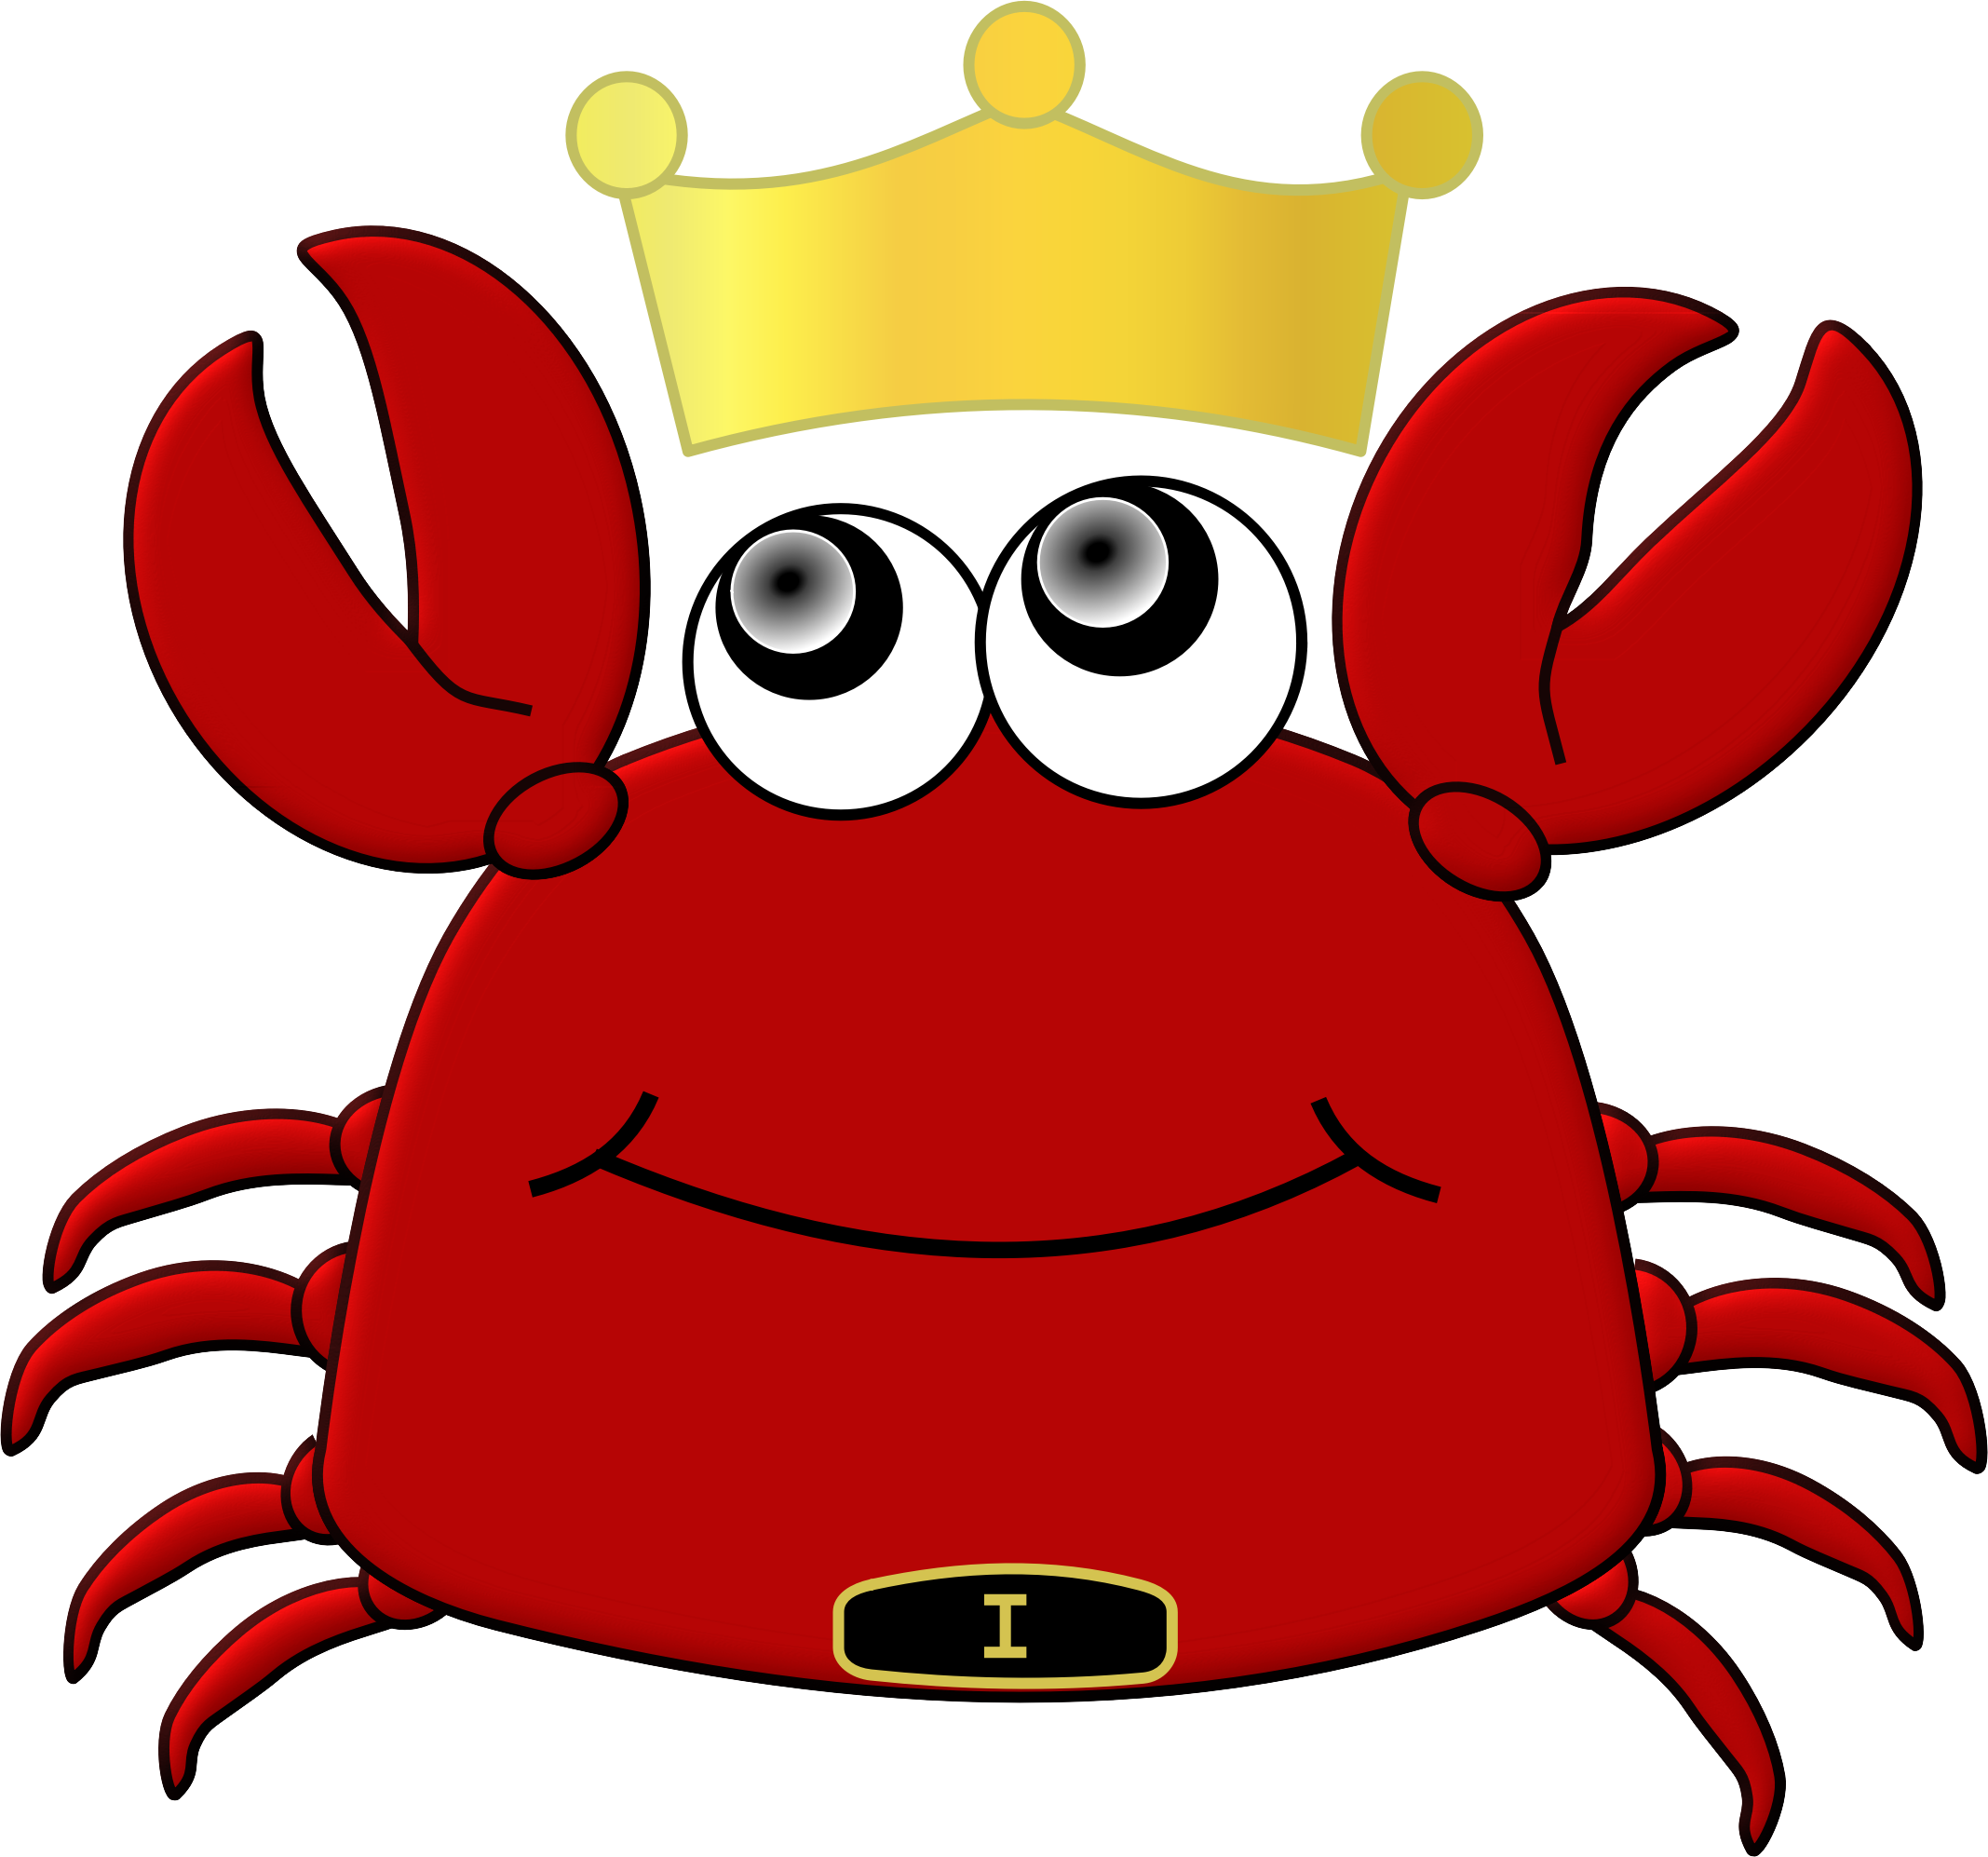 2135x1994 Free Stock Photo Of King Crab Cartoon Vector Files